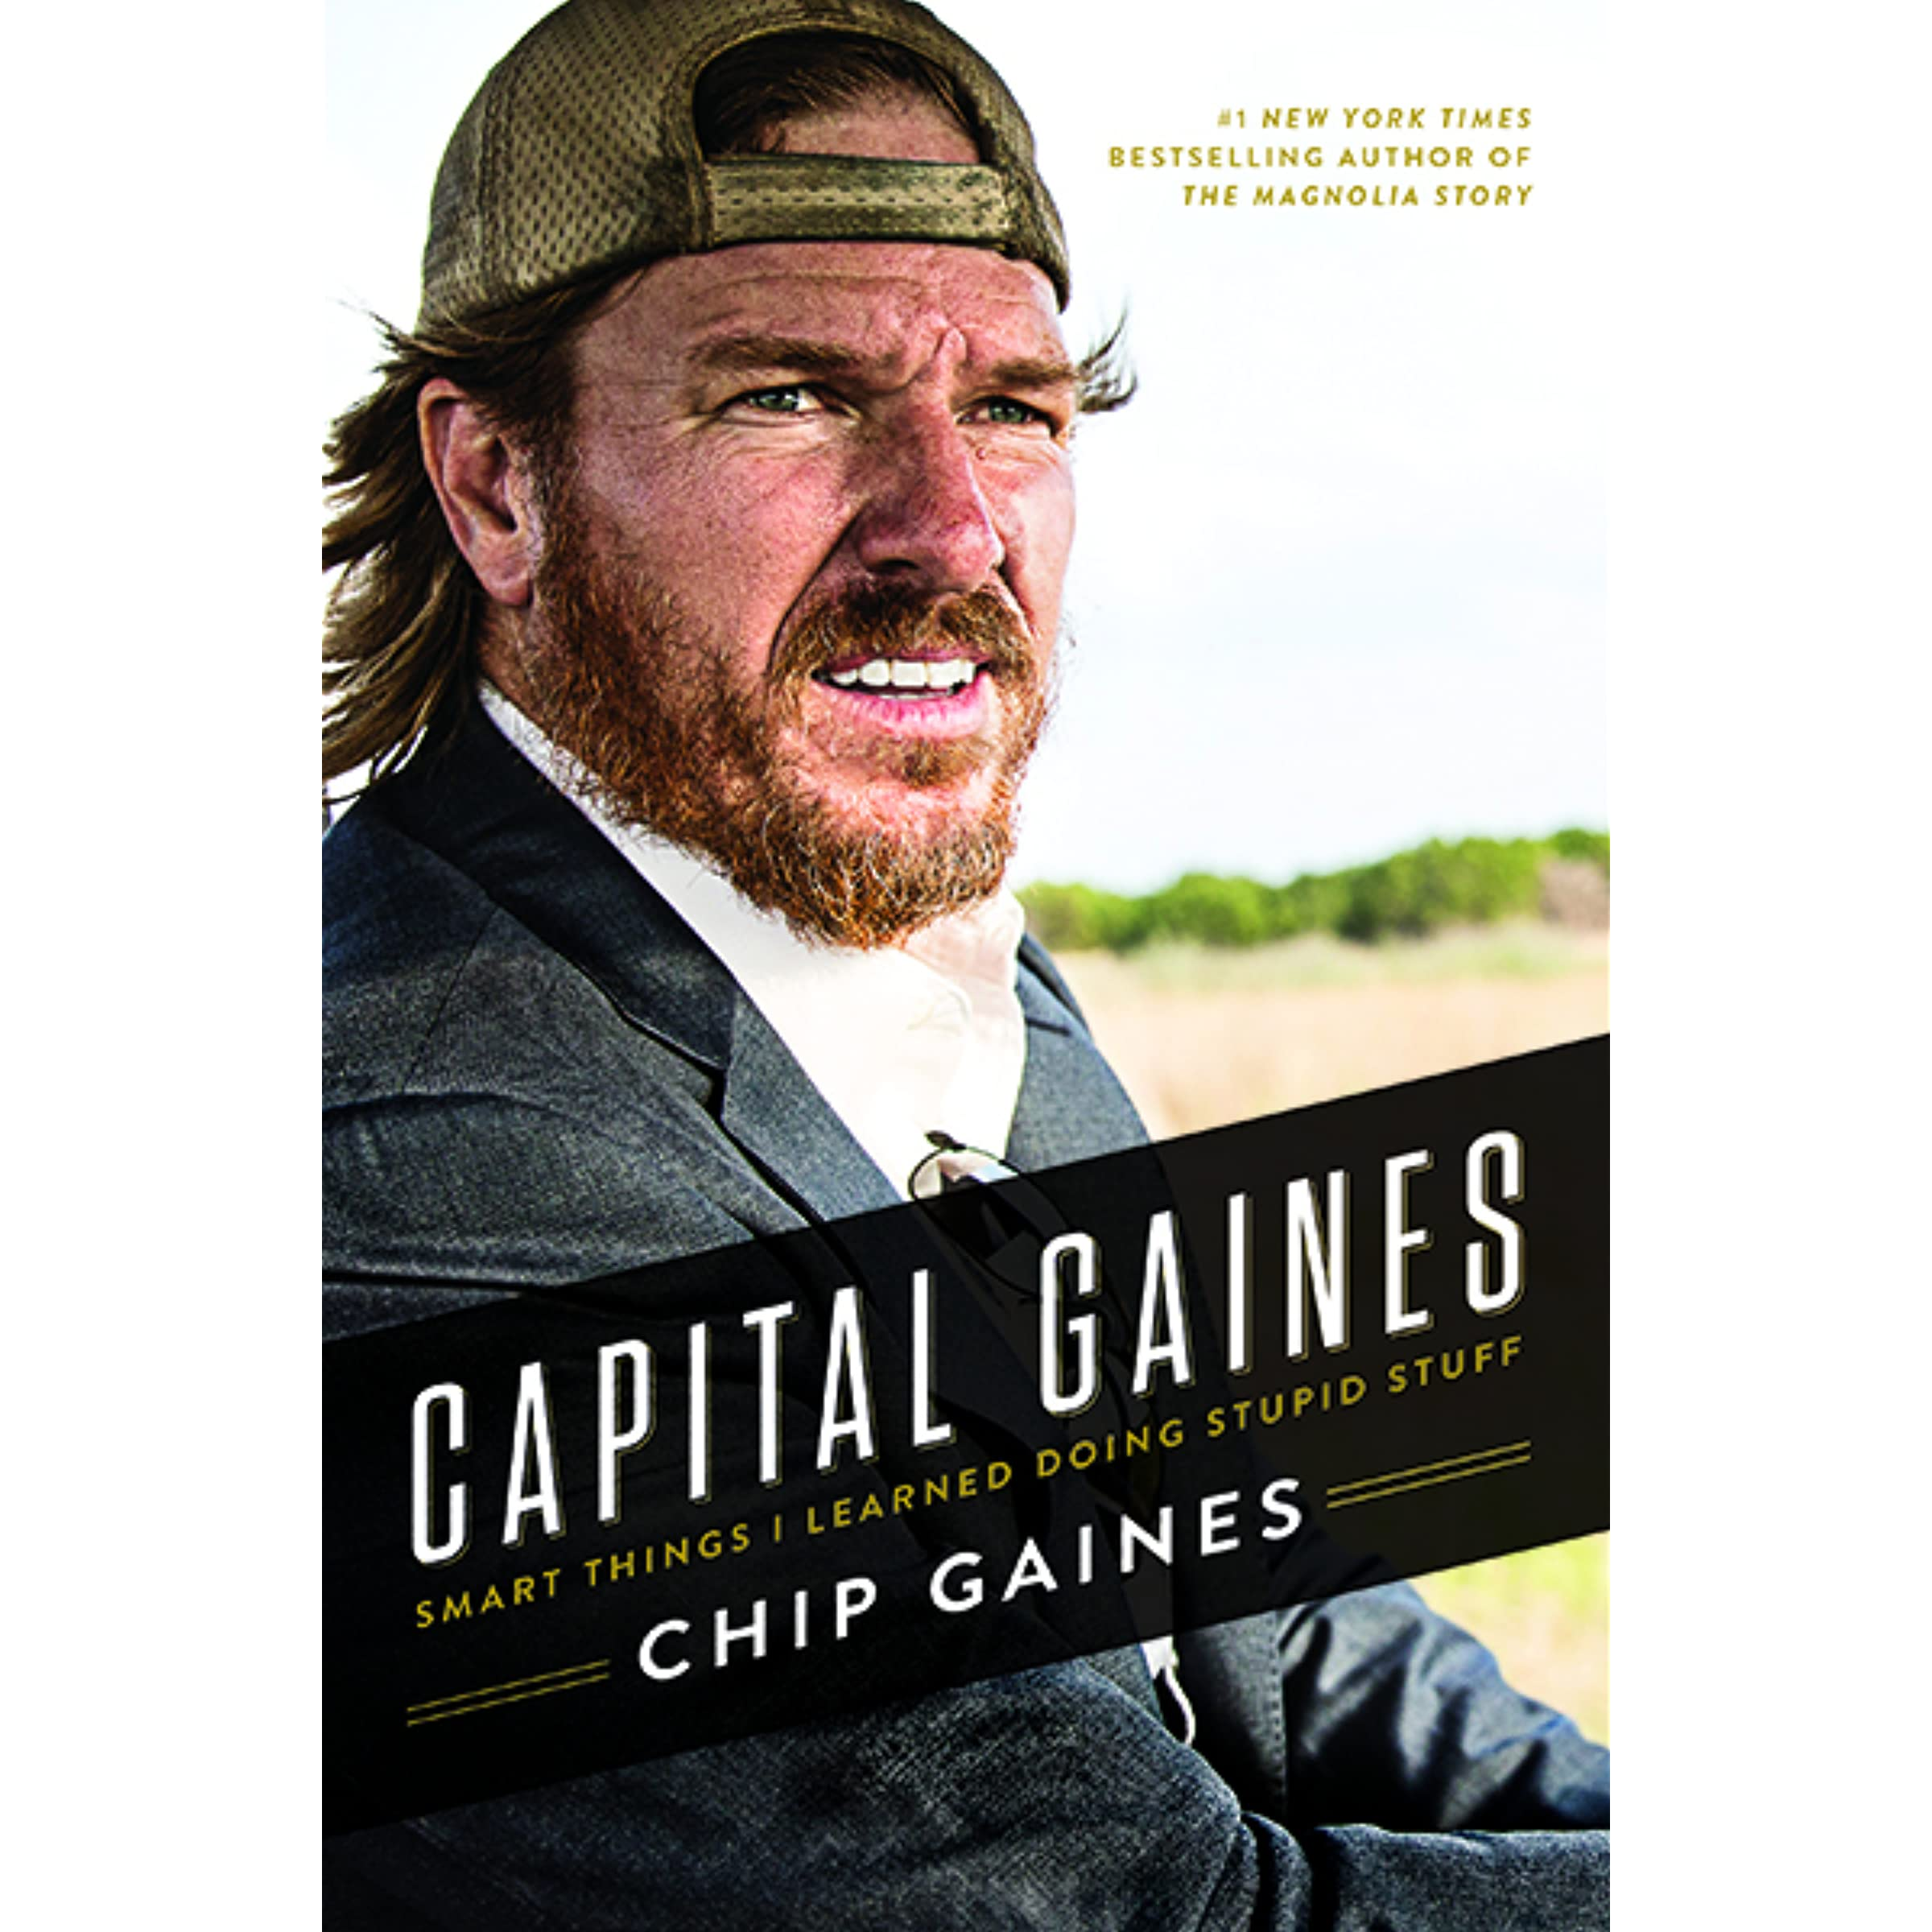 75dfc42cb94 Capital Gaines  Smart Things I Learned Doing Stupid Stuff by Chip Gaines